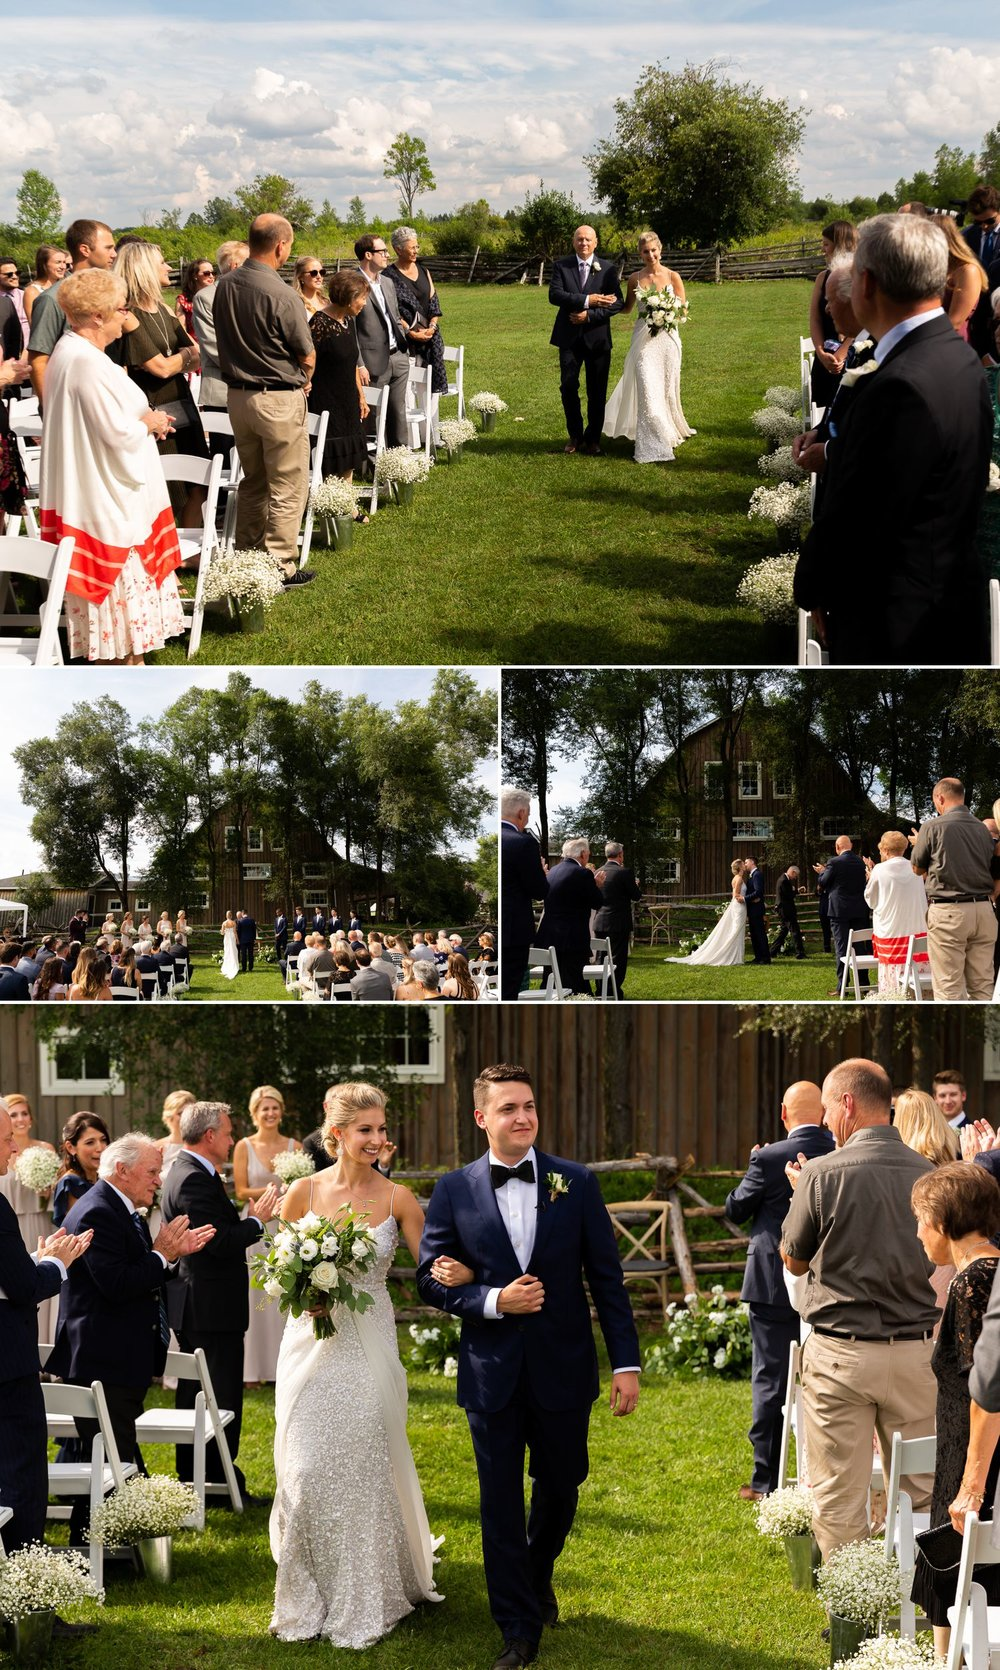 An outdoor summer wedding ceremony taking place at Stonefields Estate